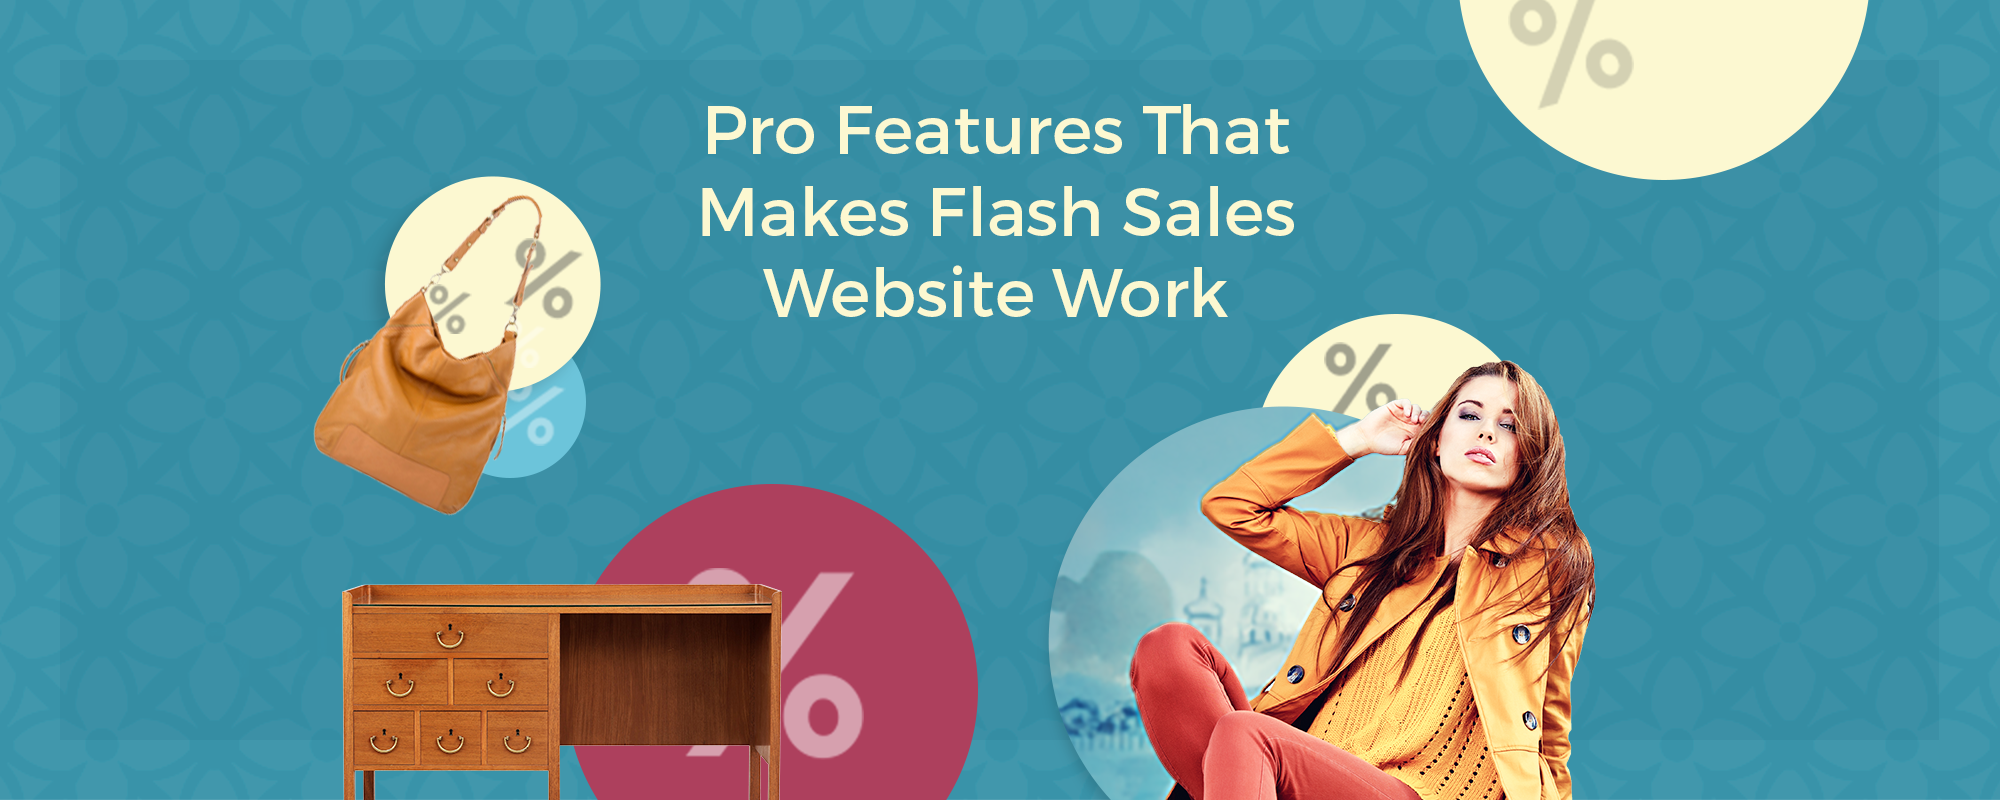 Must-have Script Features for an Online Fashion and Flash Deals Store